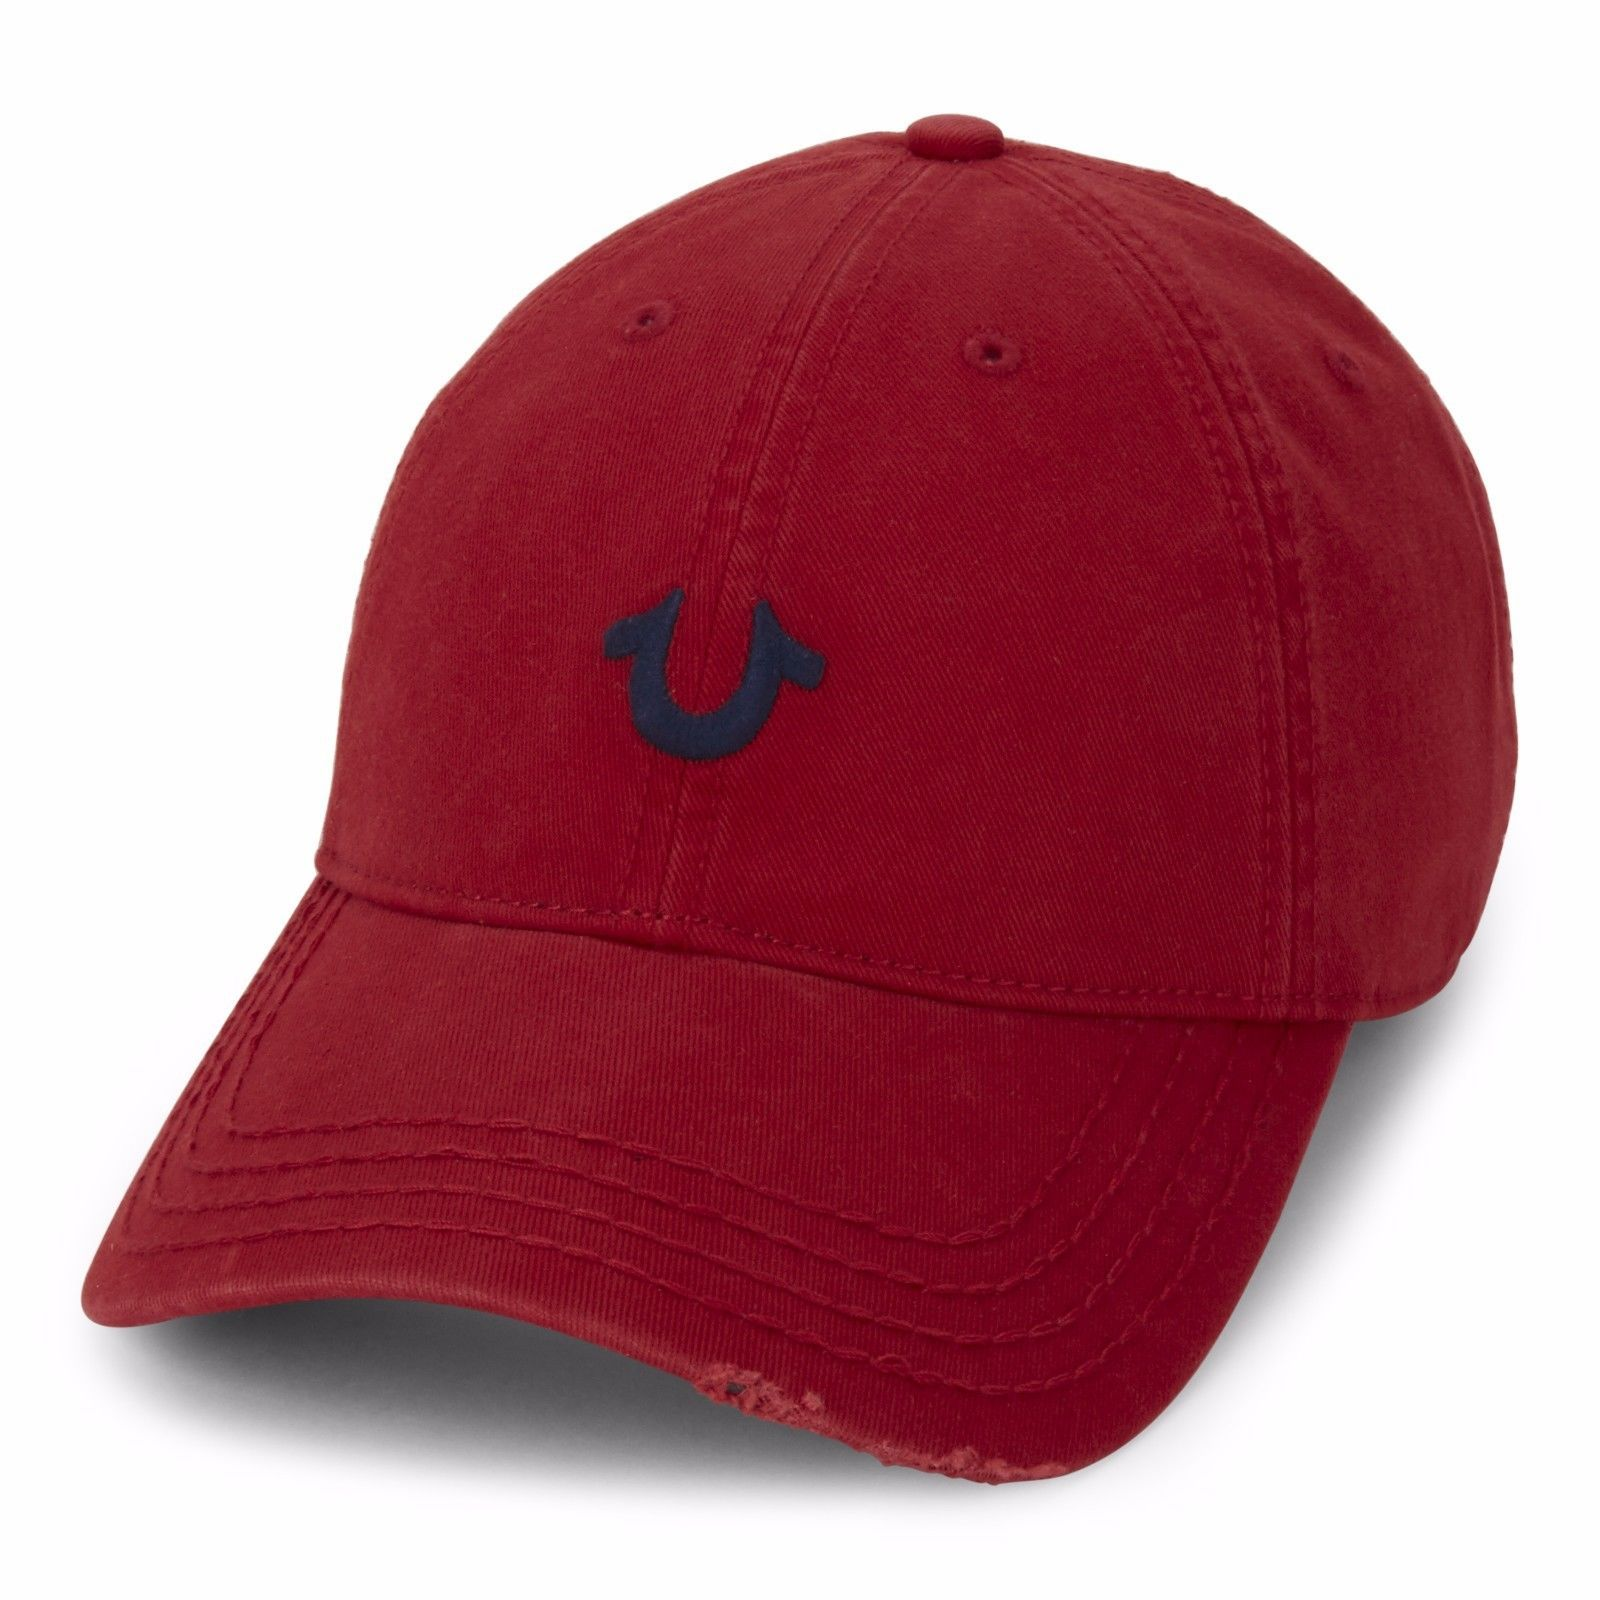 a6789e5e97070 Hats 163543  True Religion Core Logo Baseball Cap True Red -  BUY IT NOW  ONLY   48 on eBay!